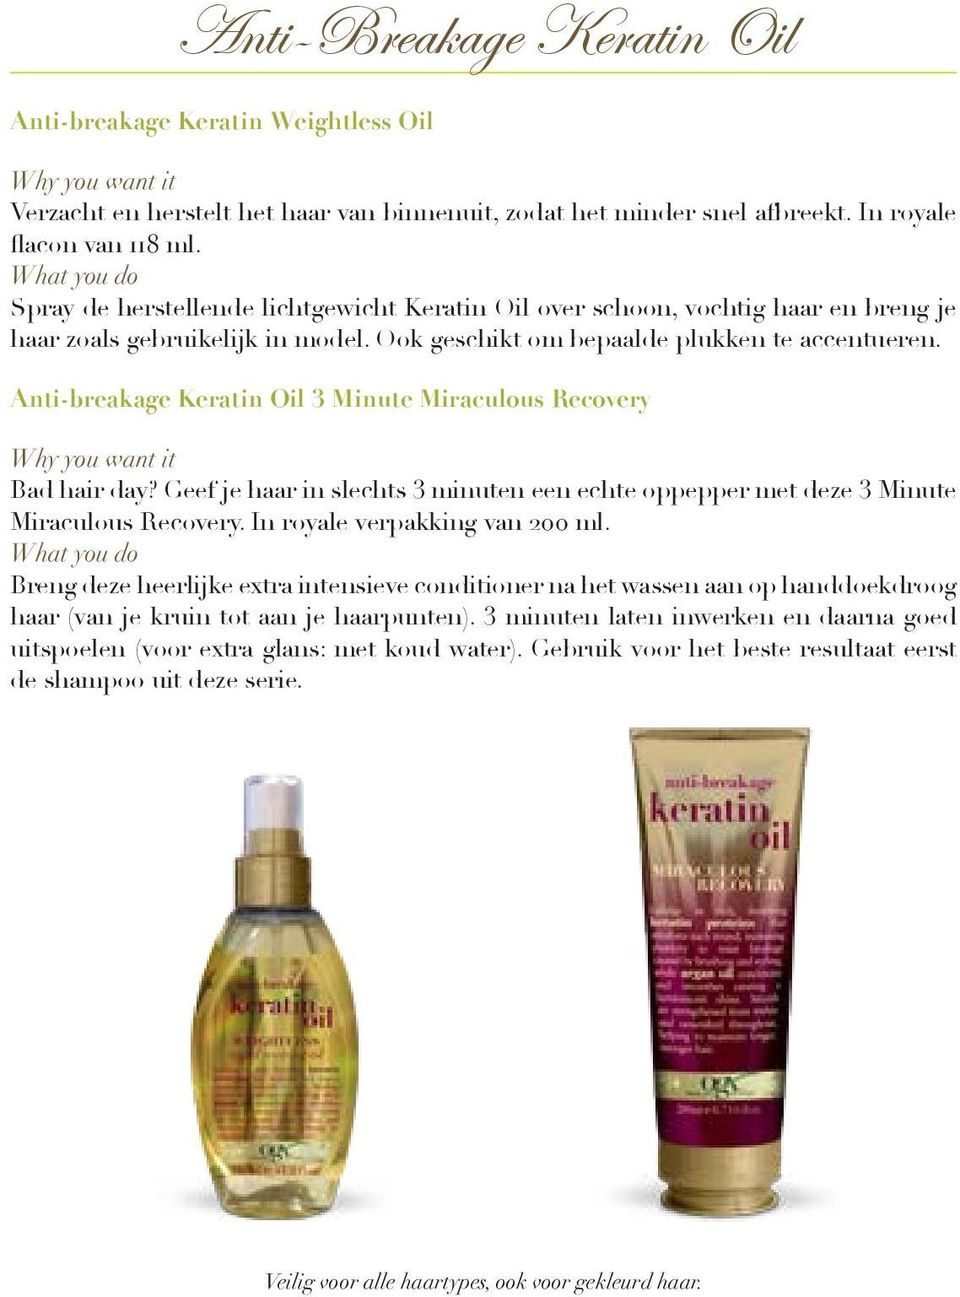 Anti-breakage Keratin Oil 3 Minute Miraculous Recovery Bad hair day? Geef je haar in slechts 3 minuten een echte oppepper met deze 3 Minute Miraculous Recovery. In royale verpakking van 200 ml.